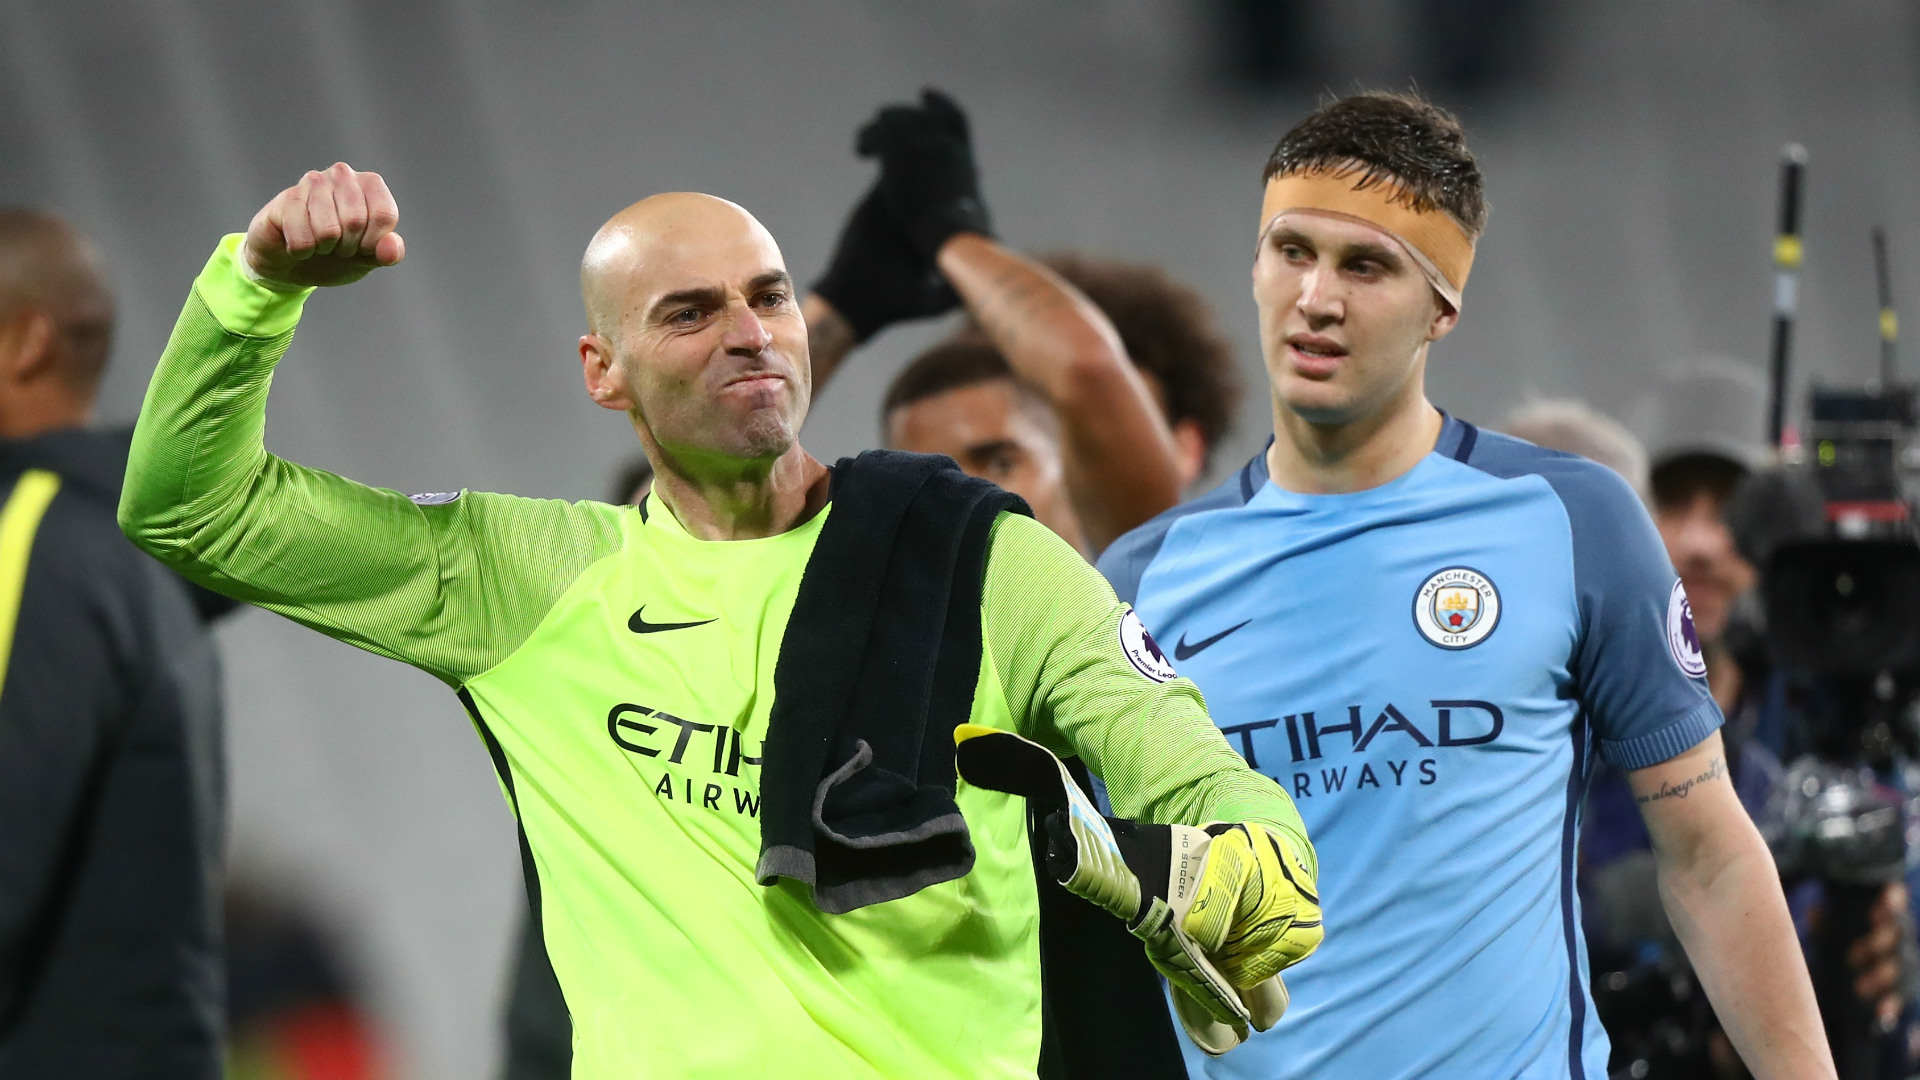 Willy Caballero John Stones Manchester City 01022017